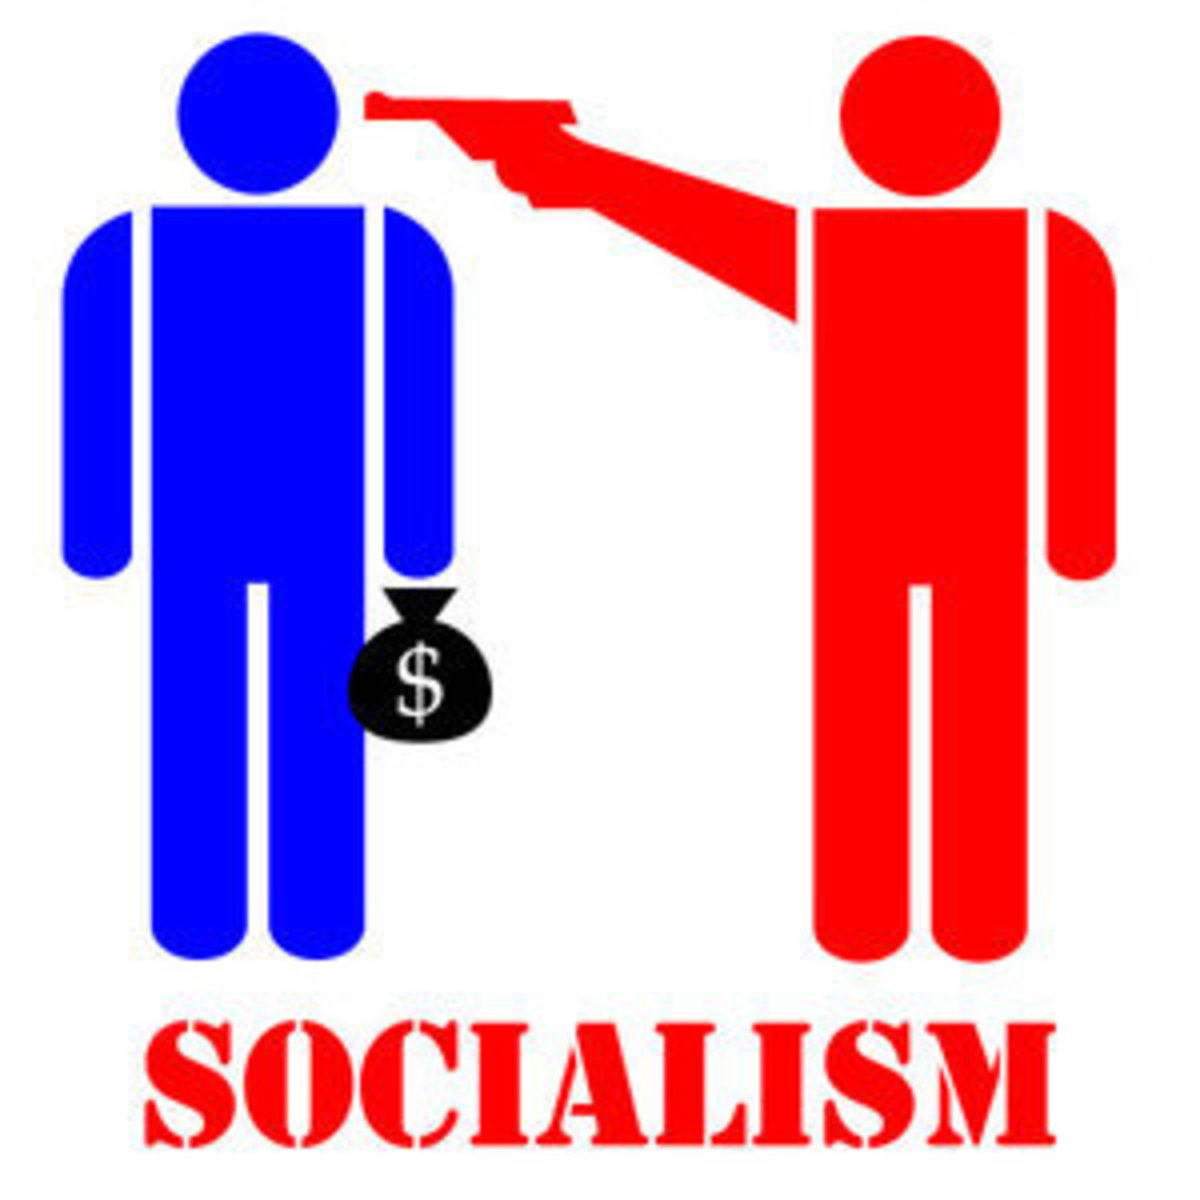 SOCIALISM MEANS FORCE USED TO CONFISCATE YOUR EARNINGS AND ASSETS